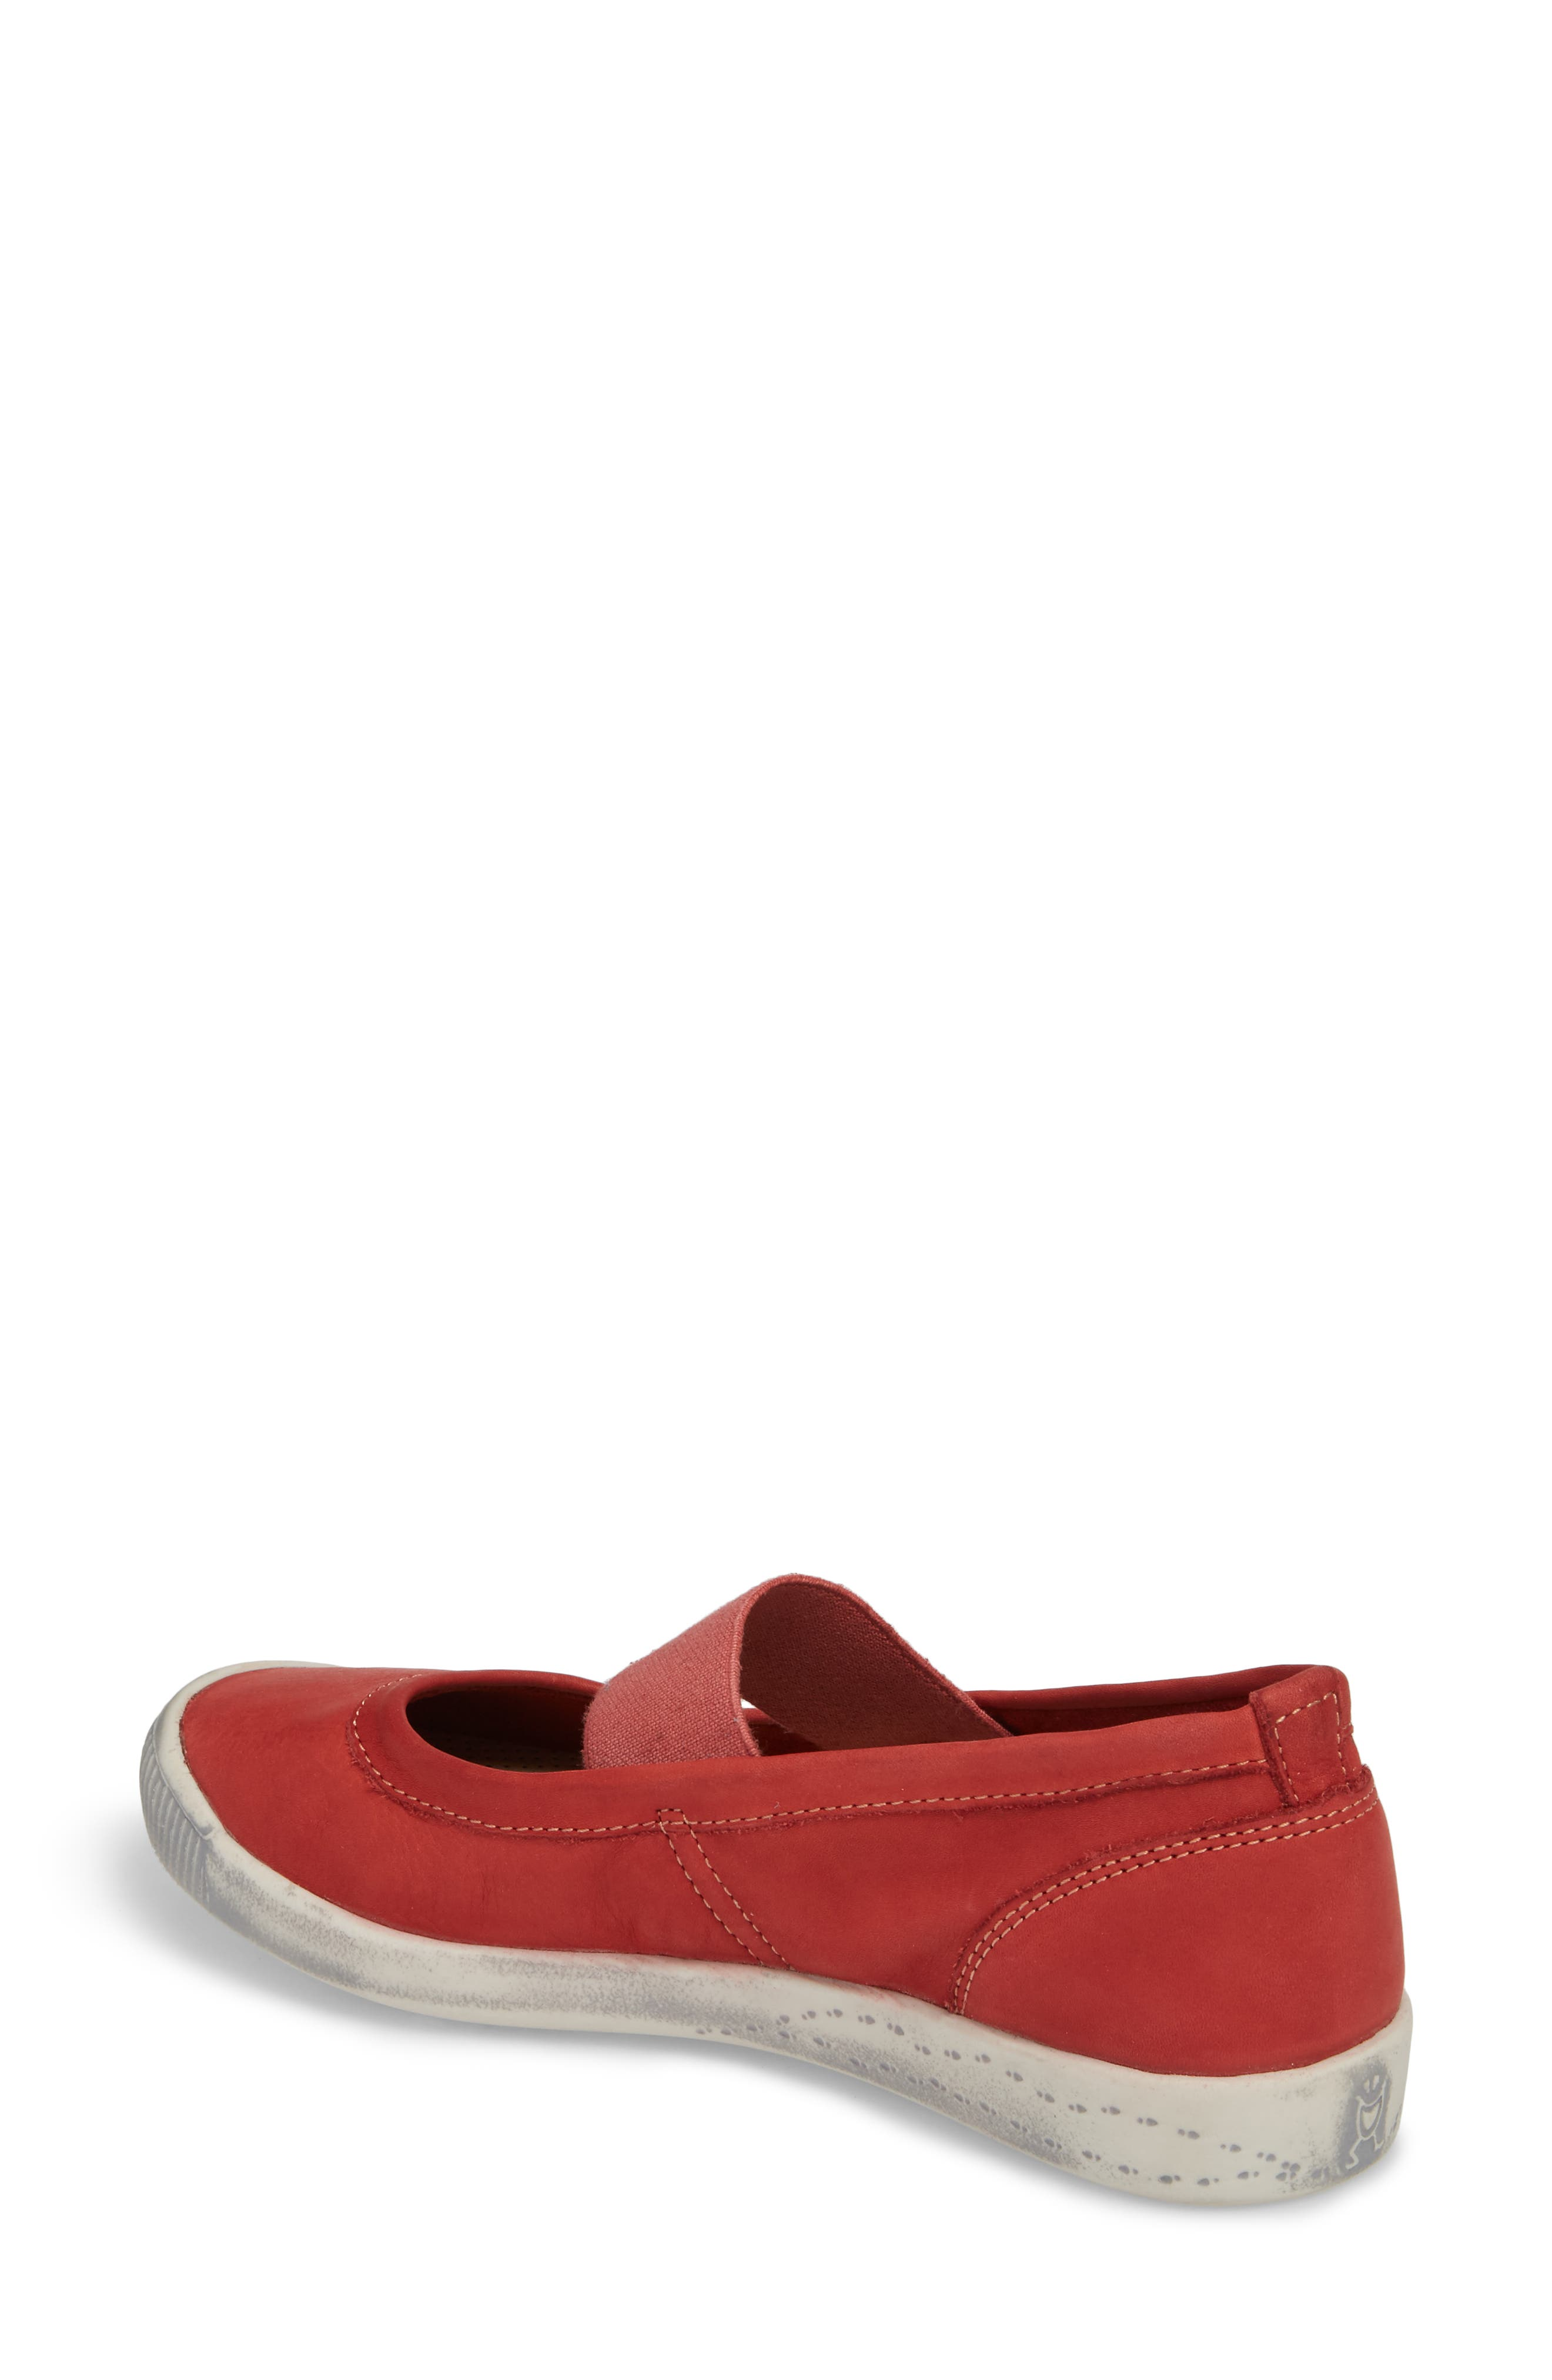 Ion Mary Jane Sneaker,                             Alternate thumbnail 2, color,                             Red Leather